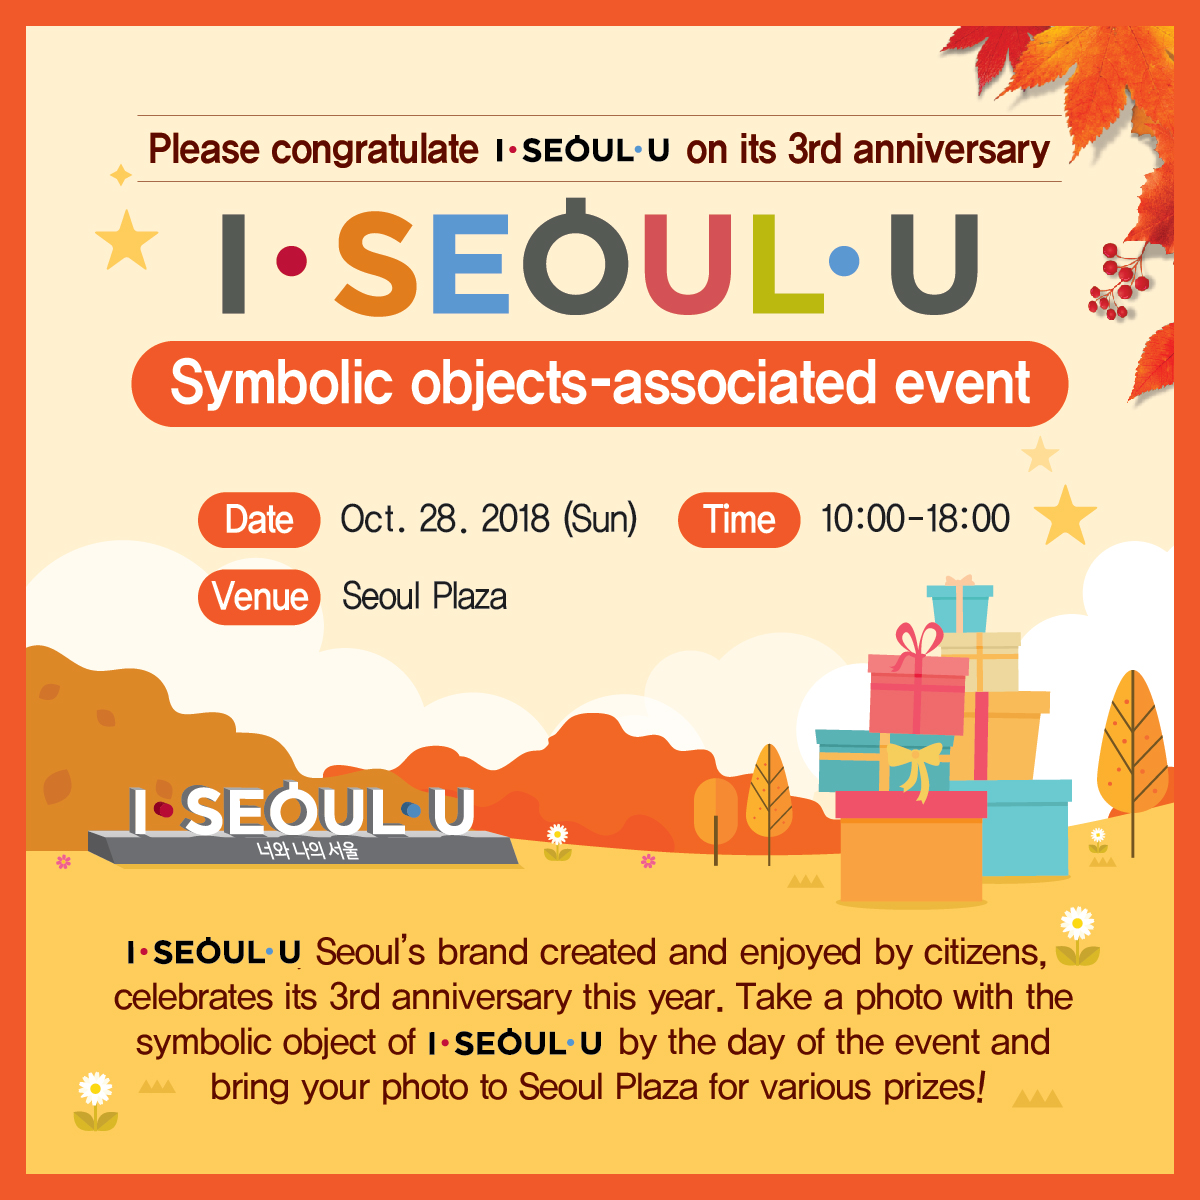 Please congratulate I.SEOUL.U on its 3rd anniversary Symbolic objects-associated event Date: Oct. 28, 2018 (Sun) Time: 10:00-18:00 Venue: Seoul Plaza Your Seoul and Our Seoul I.SEOUL.U, Seoul's brand created and enjoyed by citizens, celebrates its 3rd anniversary this year. Take a photo with the symbolic object of I.SEOUL.U by the day of the event and bring your photo to Seoul Plaza for various prizes!